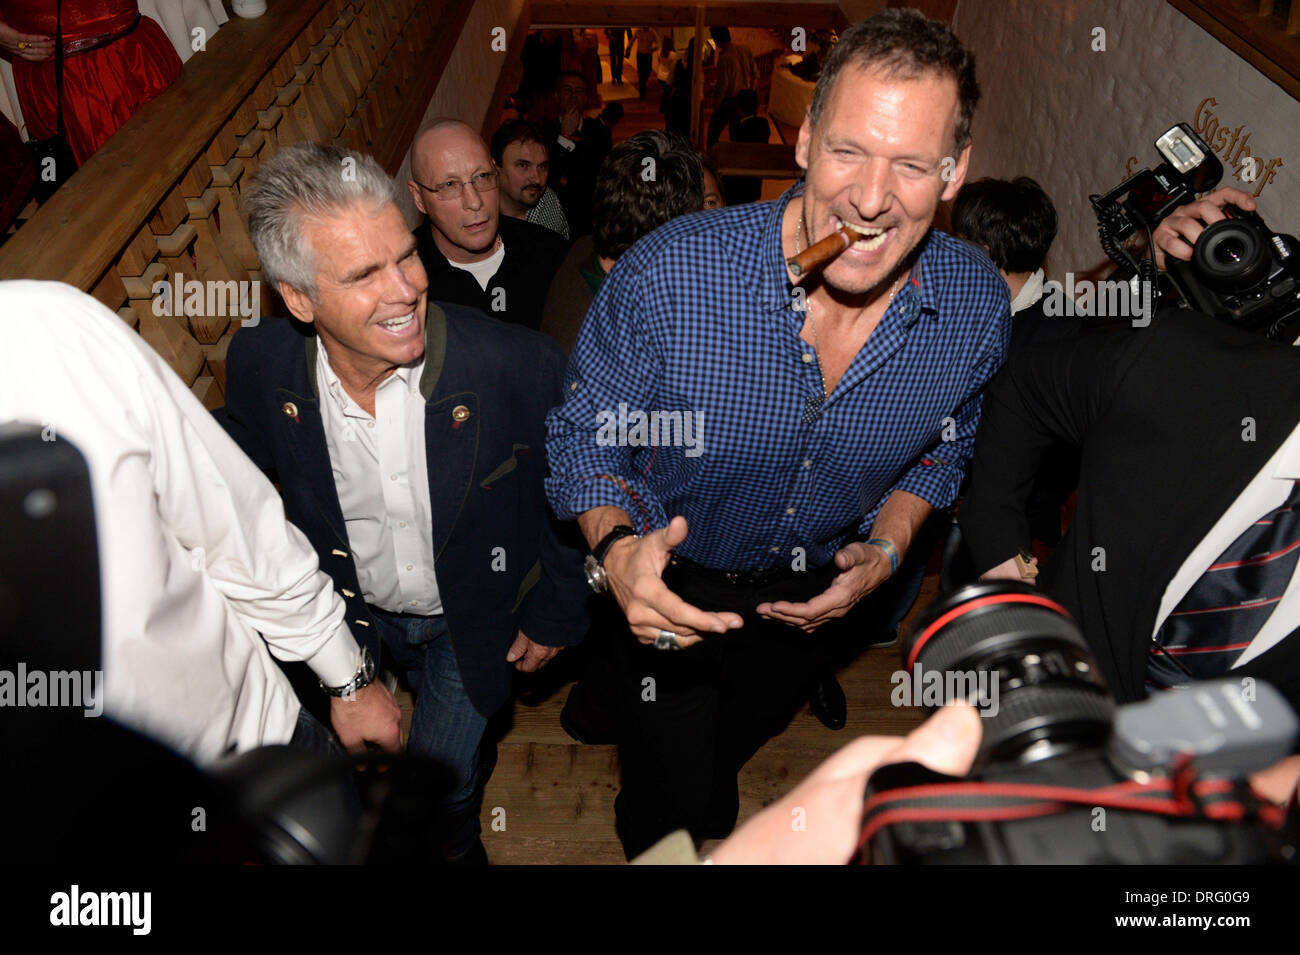 Kitzbuehel, Austria. 24th Jan, 2014. Actor Ralf Moeller (R) poses with a cigar at the Bavarian veal sausage party in the Stanglwirt bar near Kitzbuehel, Austria, 24 January 2014. Many celebrities came for the annual Austrian downhill ski race Hahnenkamm race in worldfamous skiing location. Photo: Felix Hoerhager/dpa/Alamy Live News - Stock Image